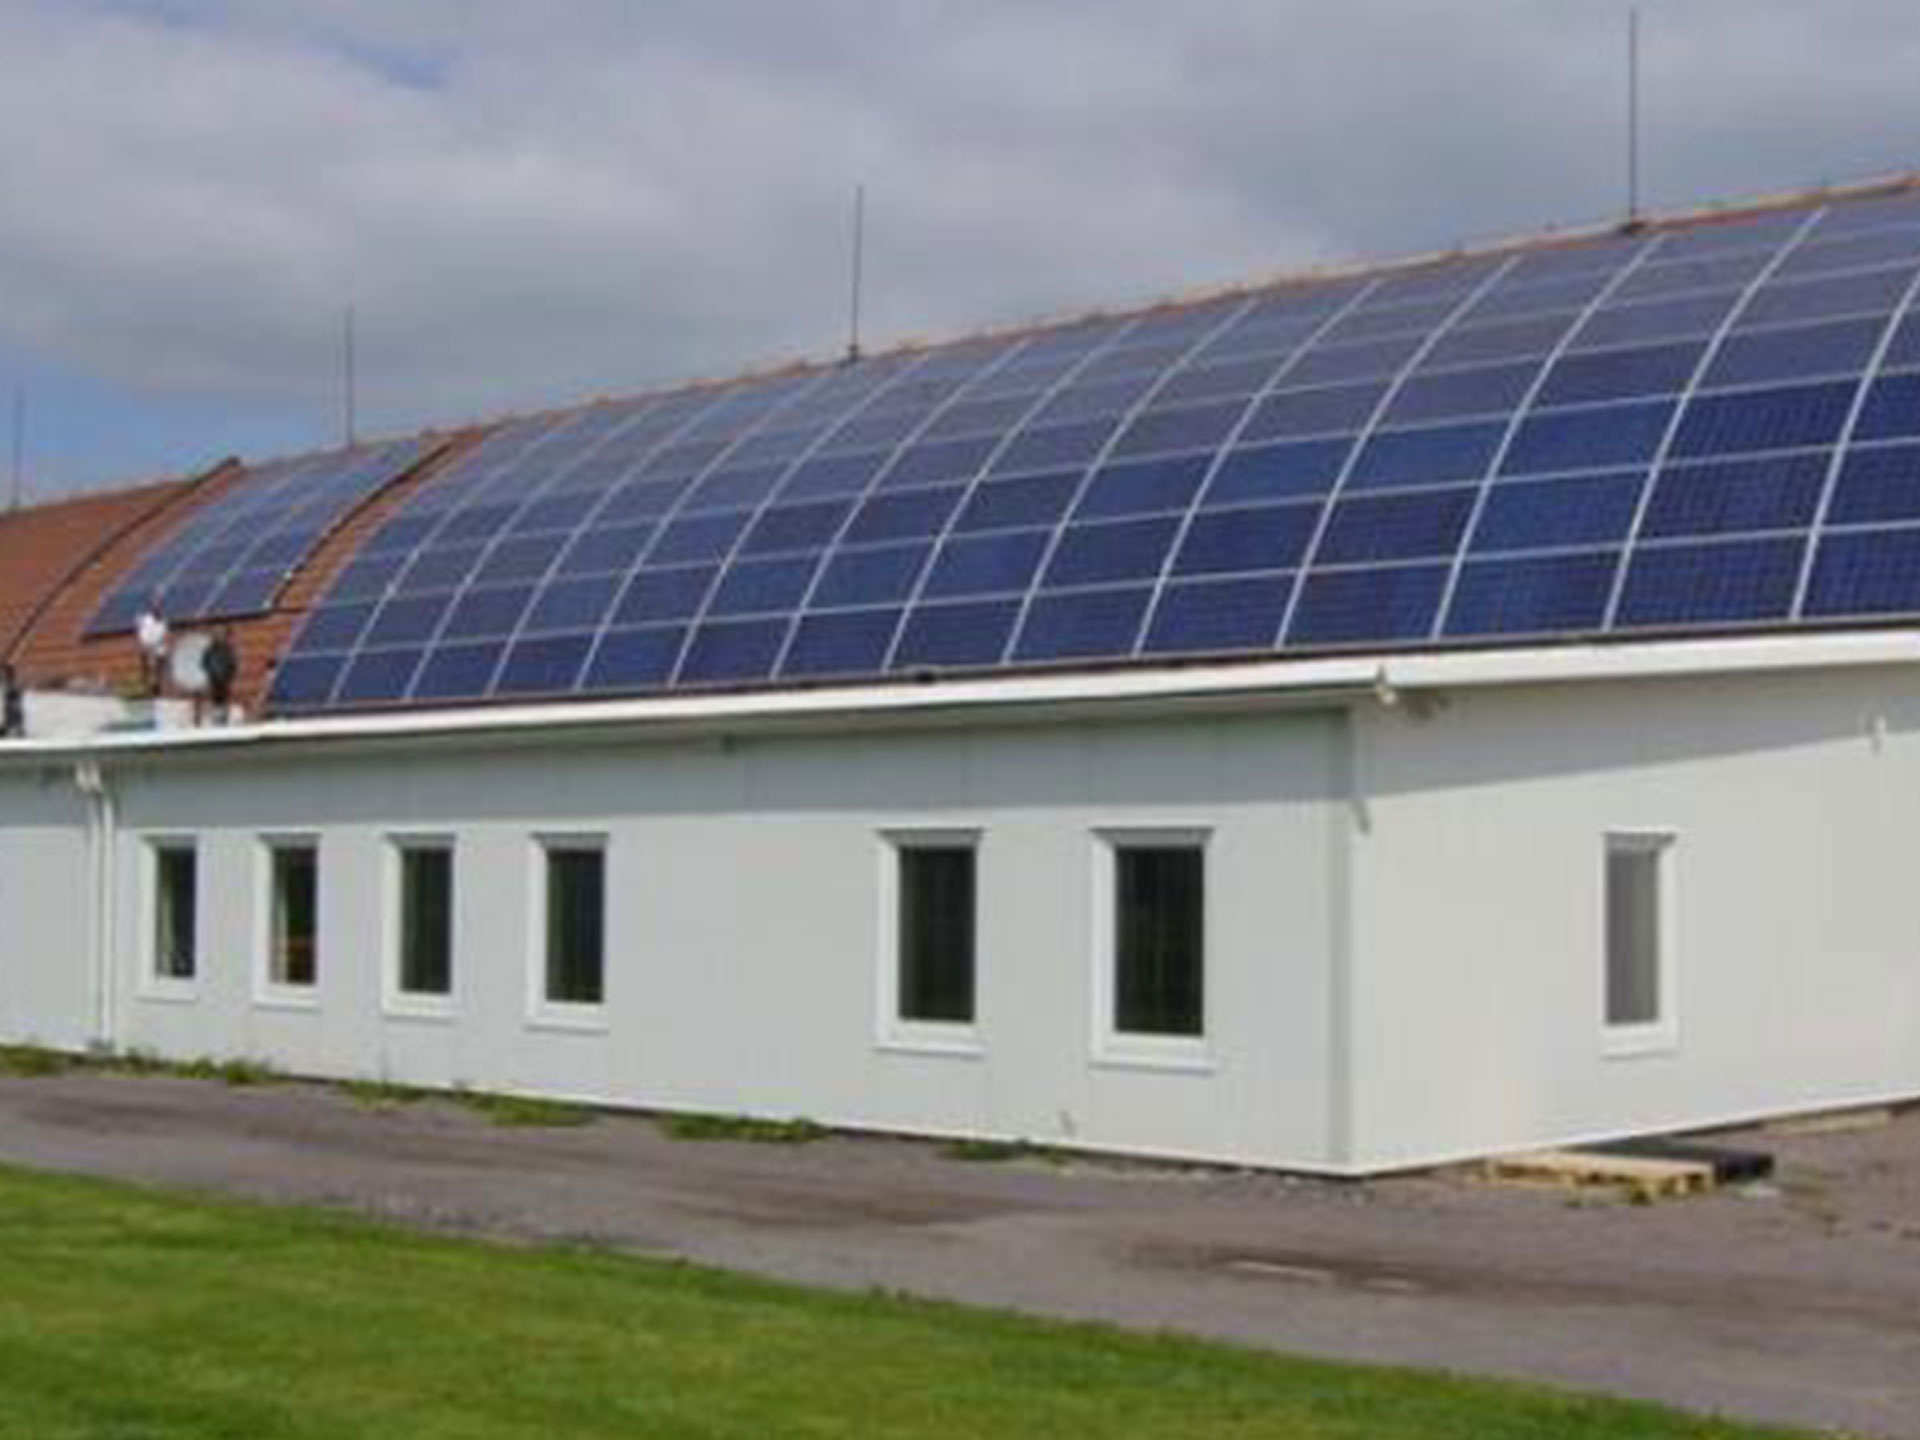 Industrial and warehouse complex, Bořice (CR) - Installation of photovoltaic power plants with an output of 30 kW.